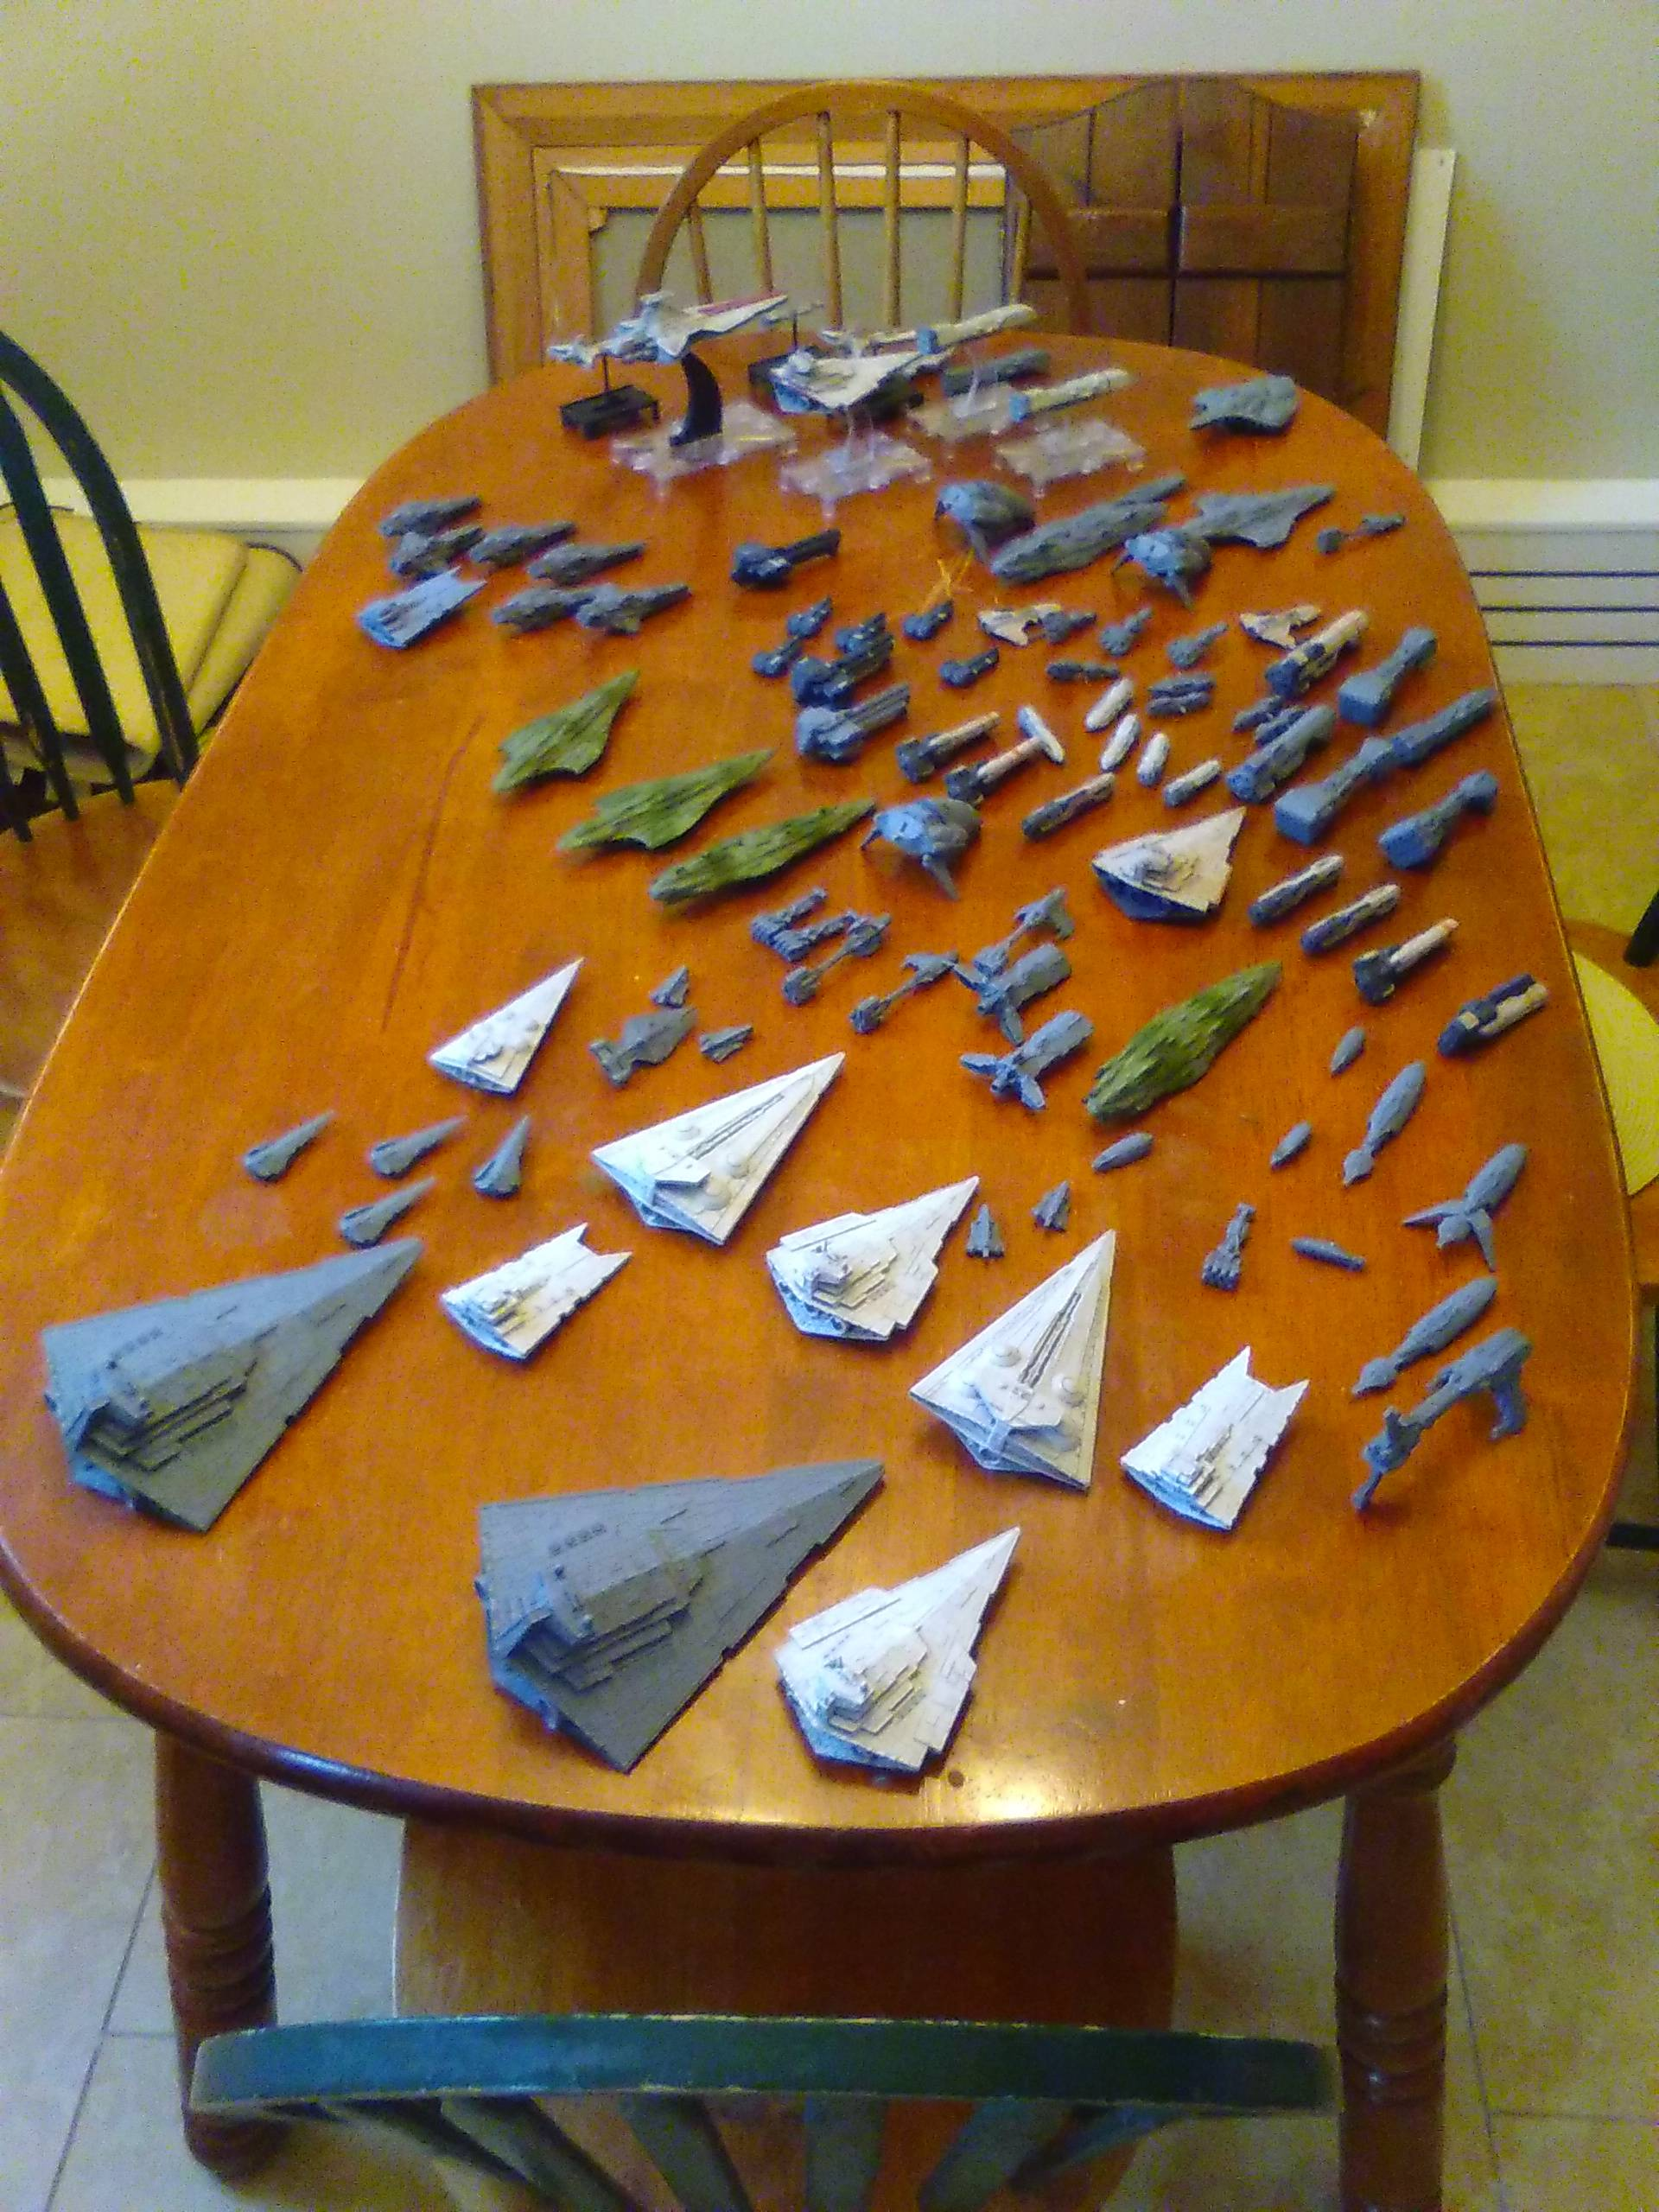 Mel Miniatures: Custom 3D Printed Ships and Squadrons (Check first